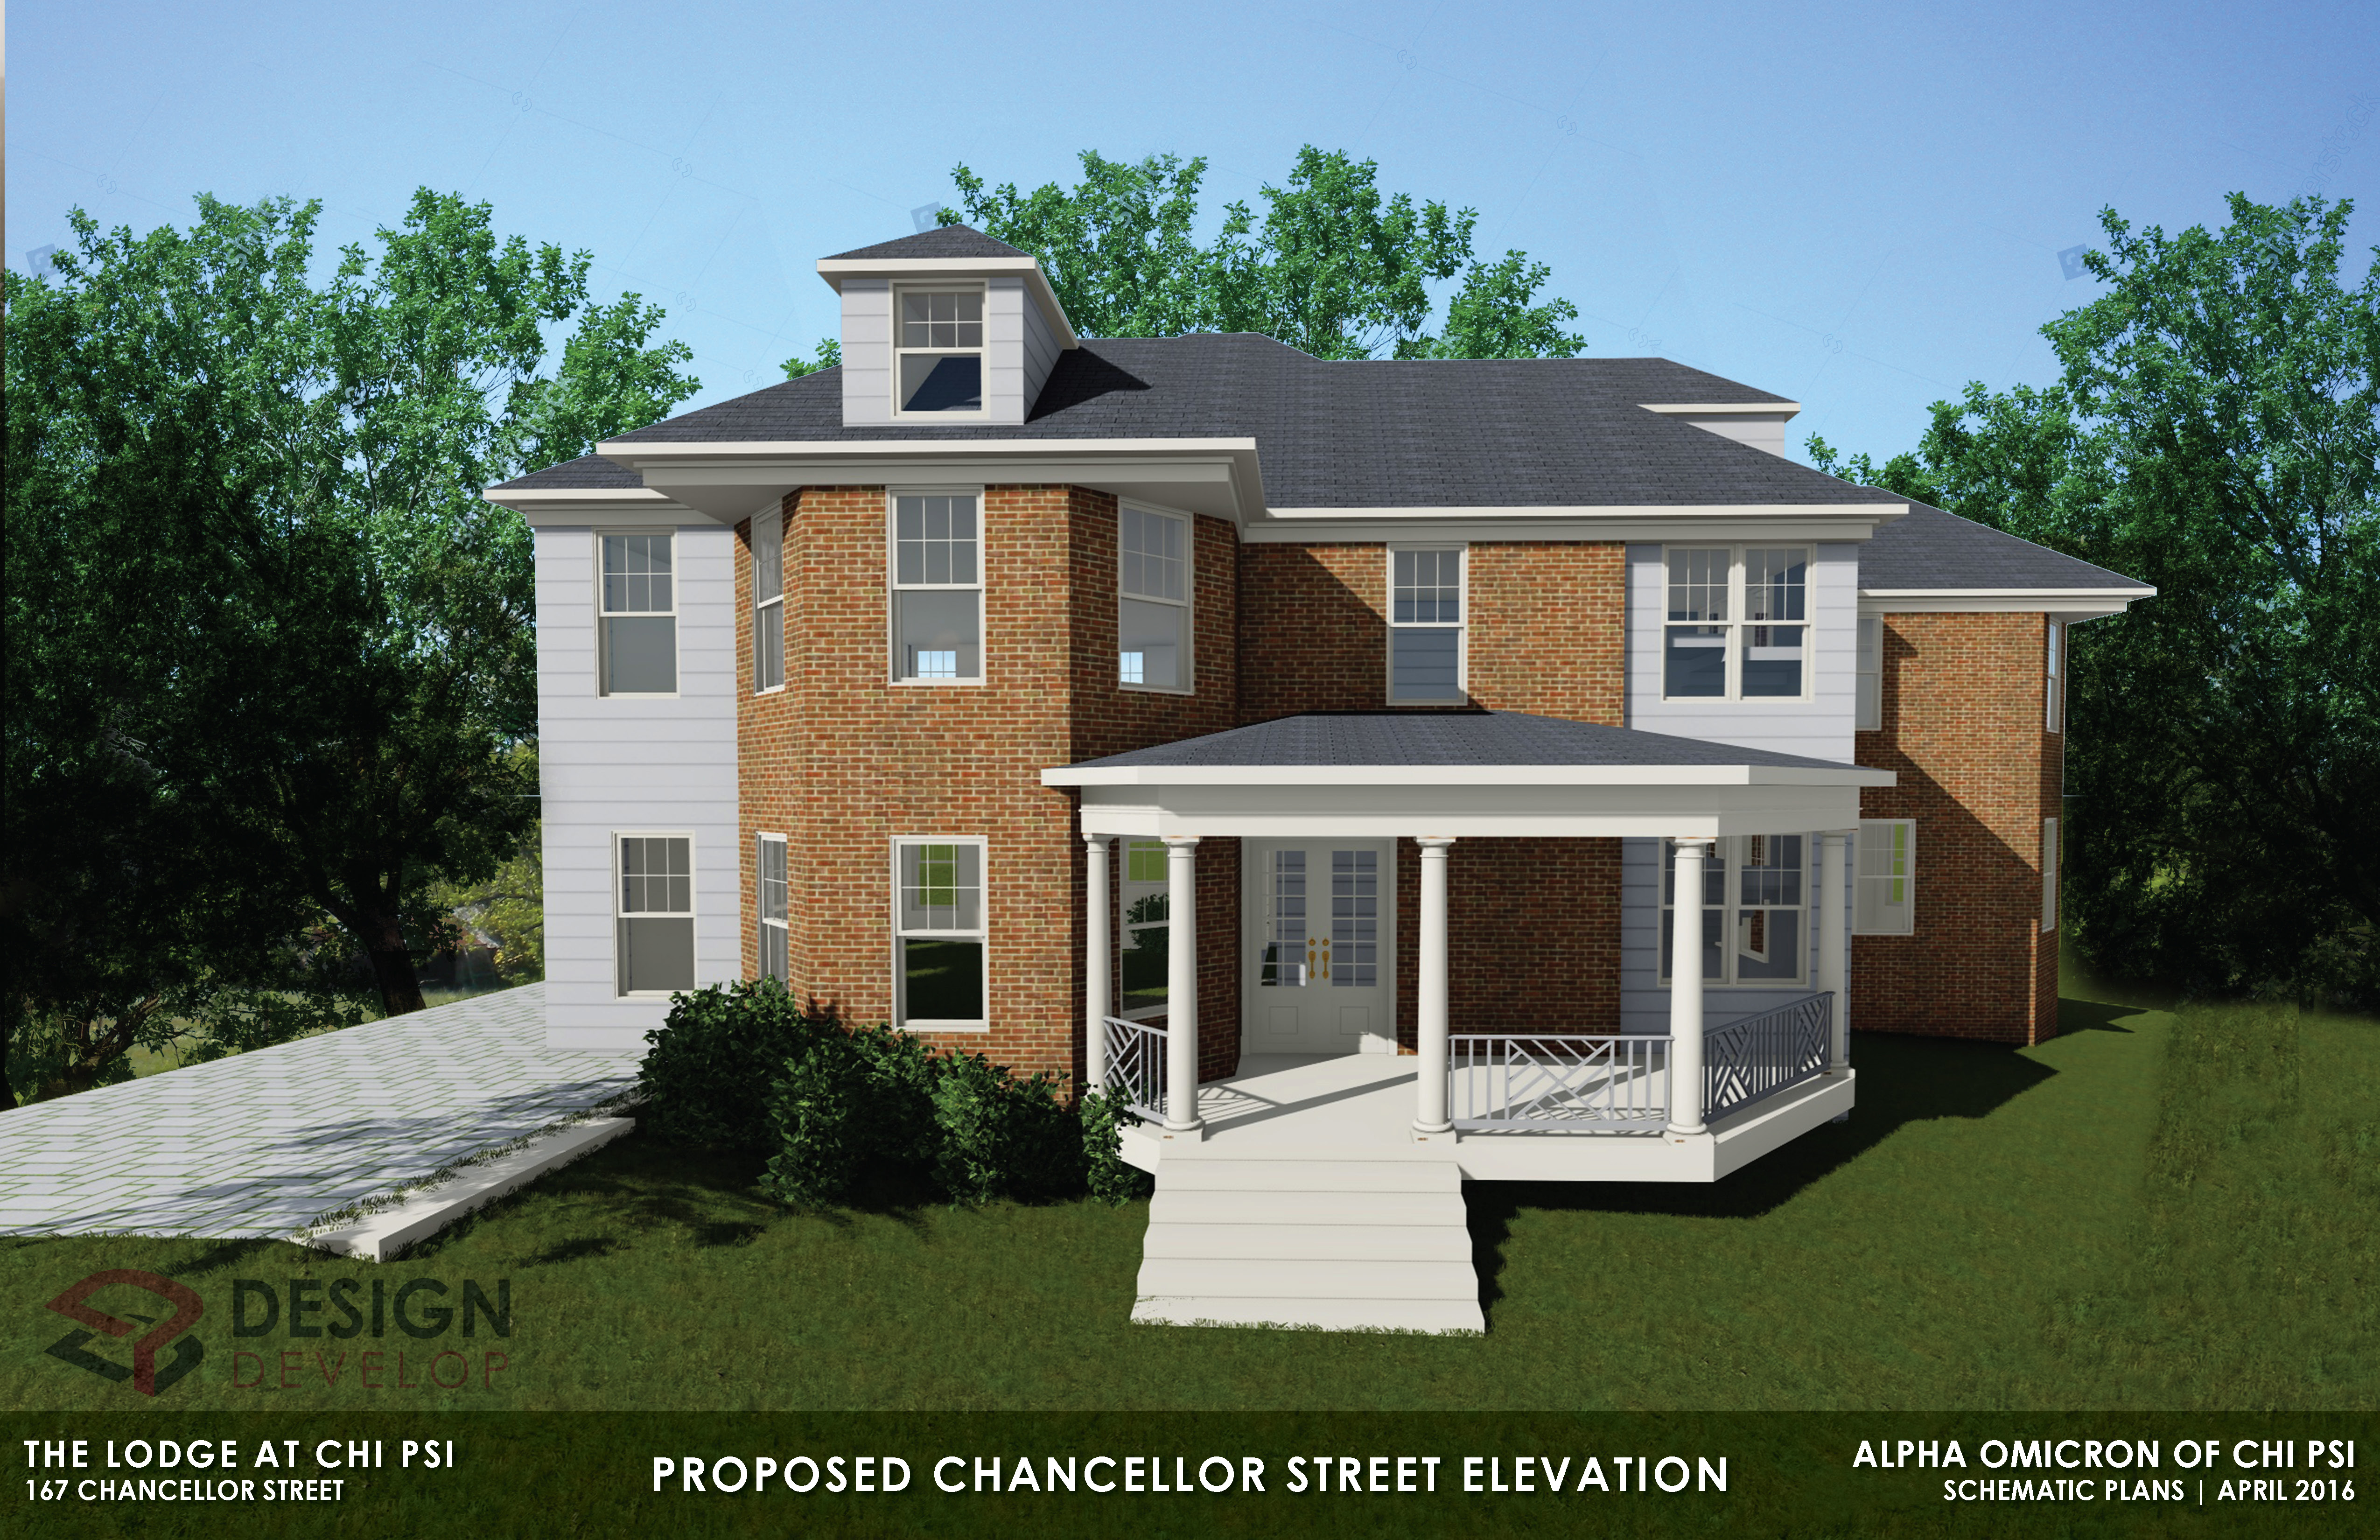 Proposed Chancellor Street Elevation